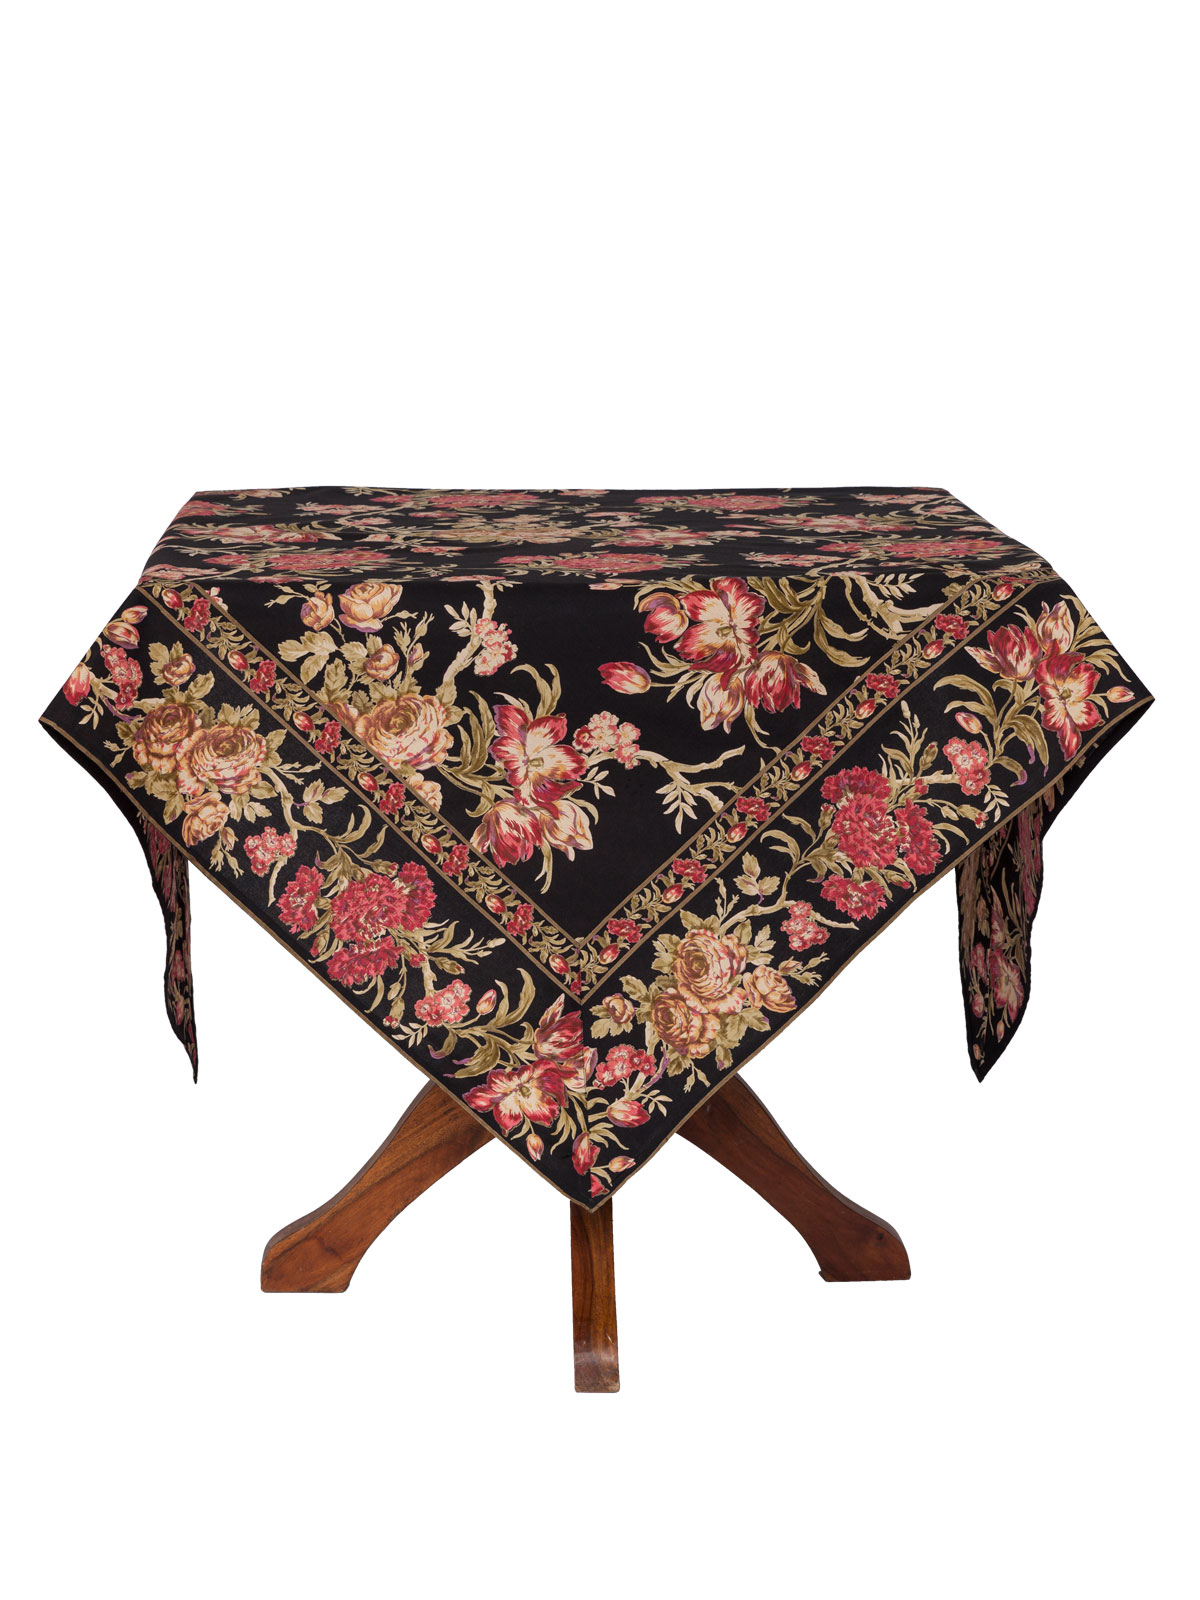 conservatory tablecloth attic linens kitchen tpconc black for inch round accent table folding lawn chairs white wood console and metal side rectangle tall nightstands threshold